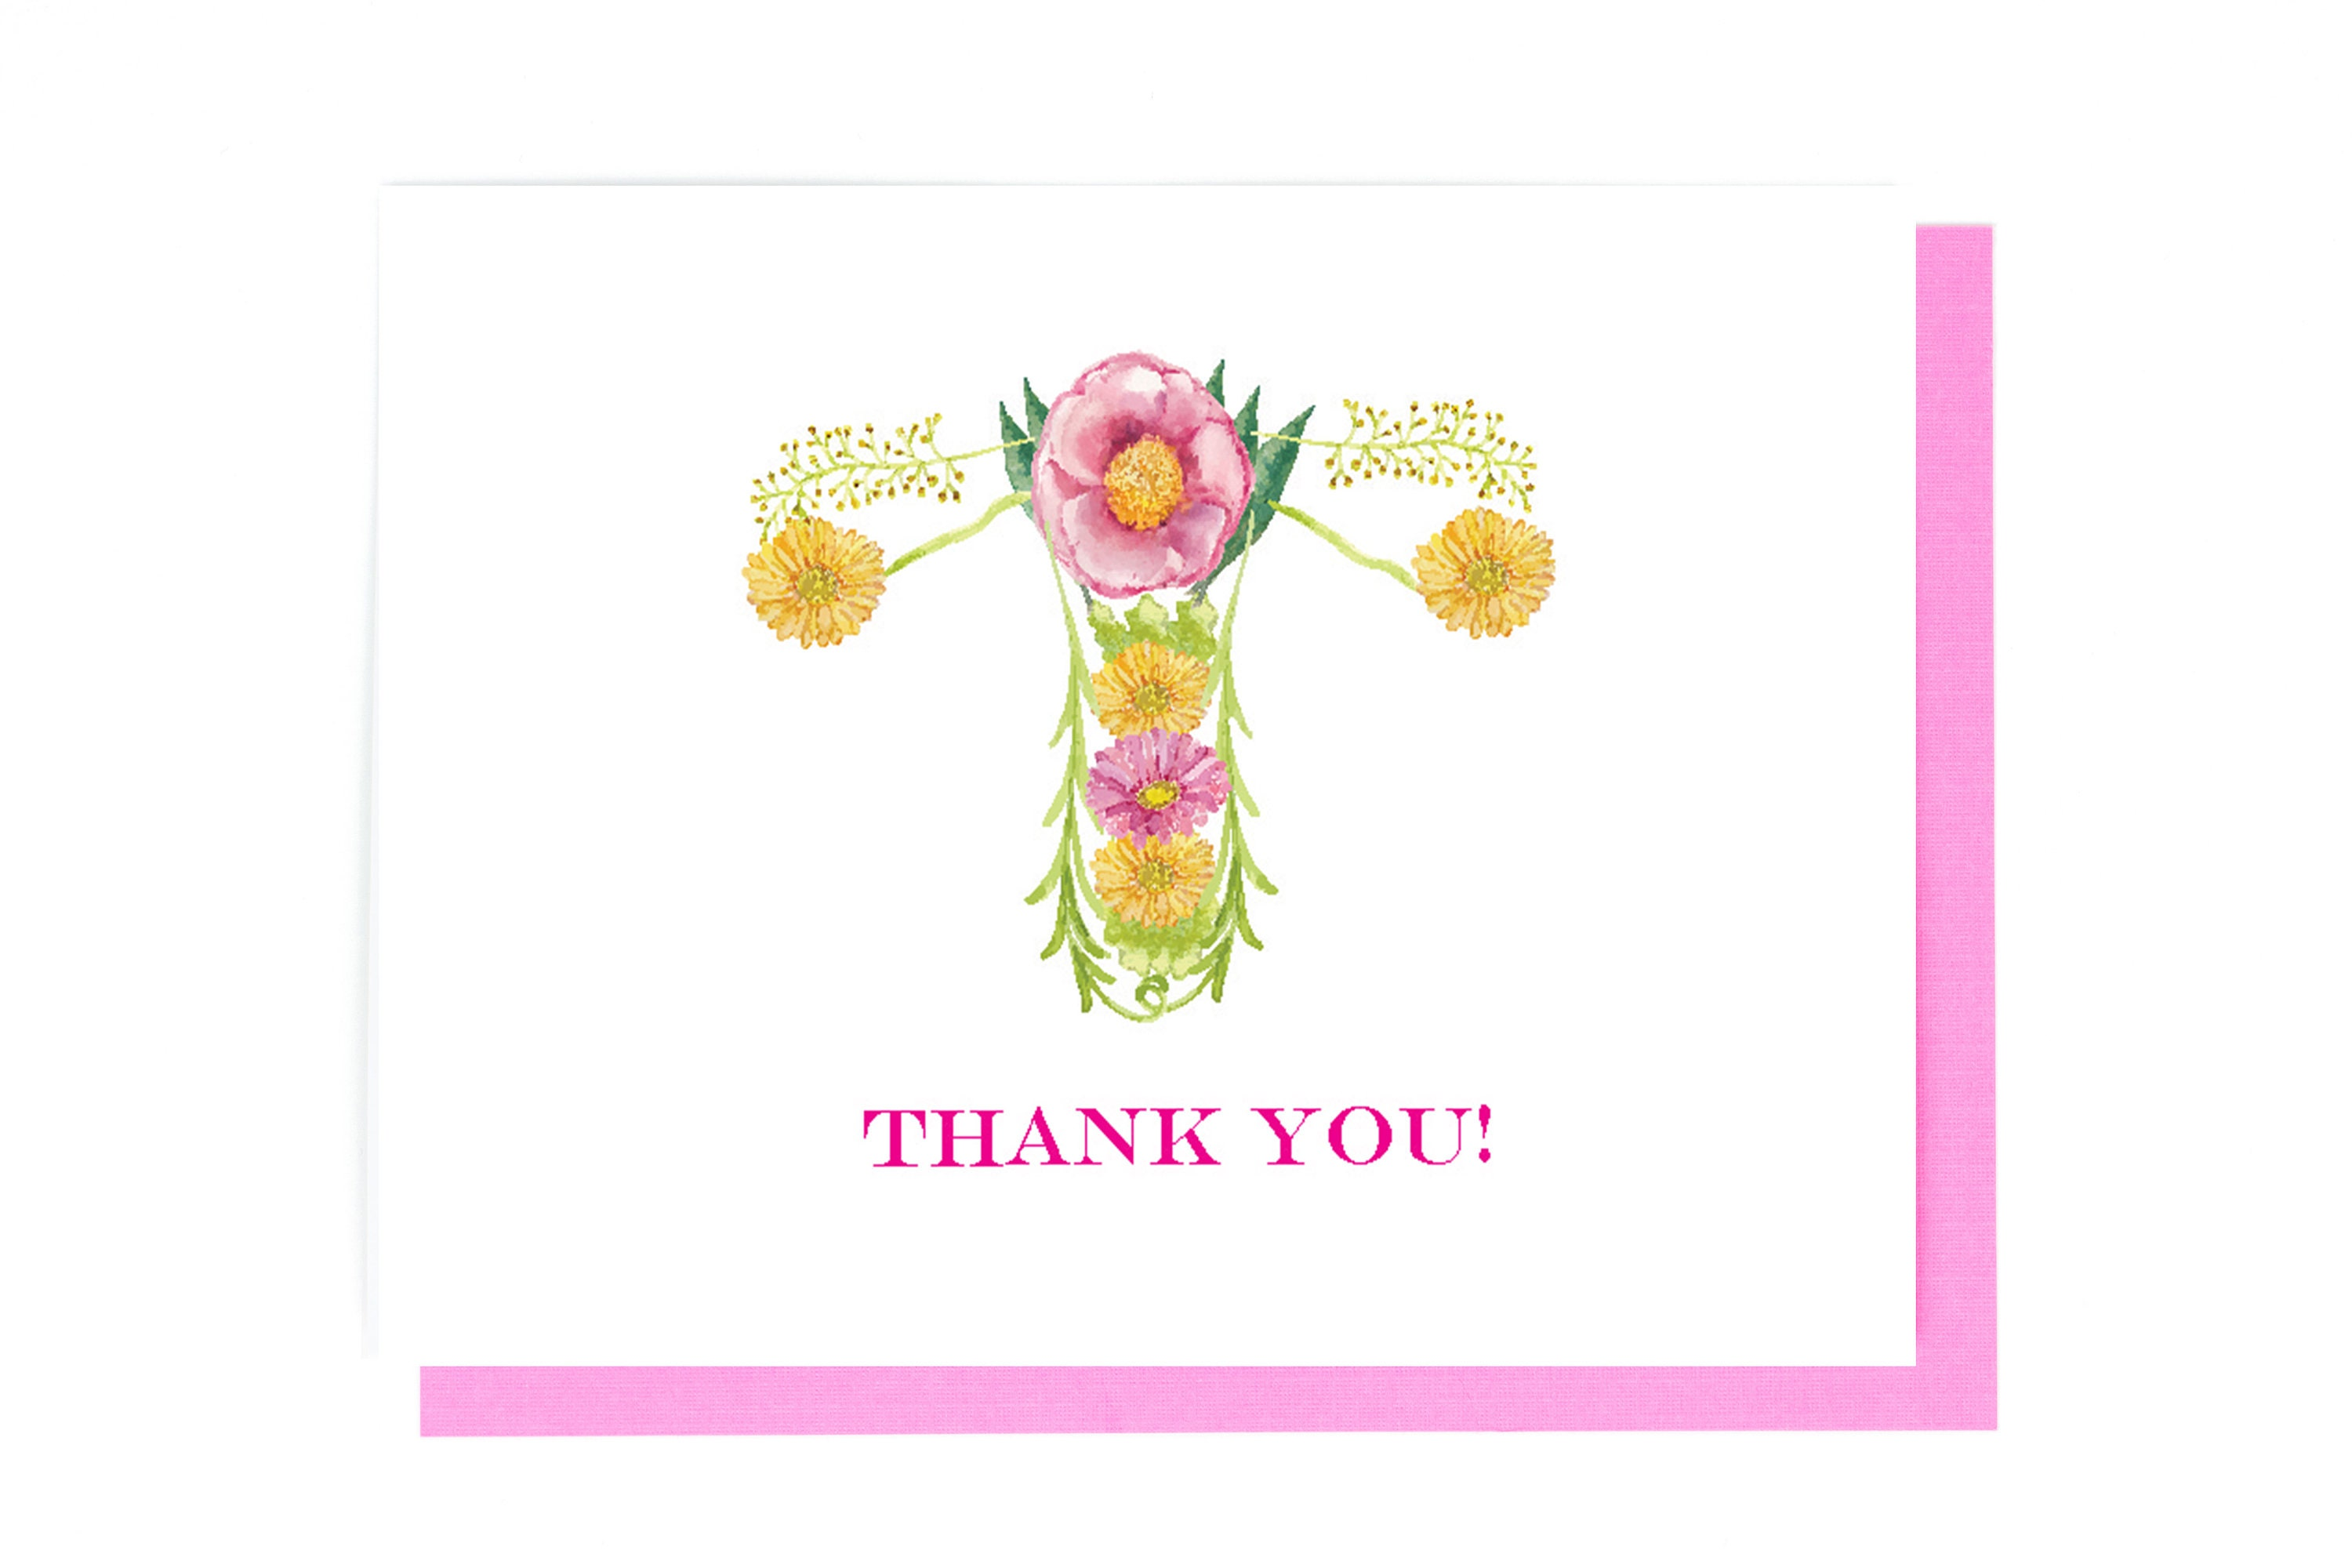 Obgyn Uterus Thank You Card Ovaries Uterus Anatomy Card Etsy